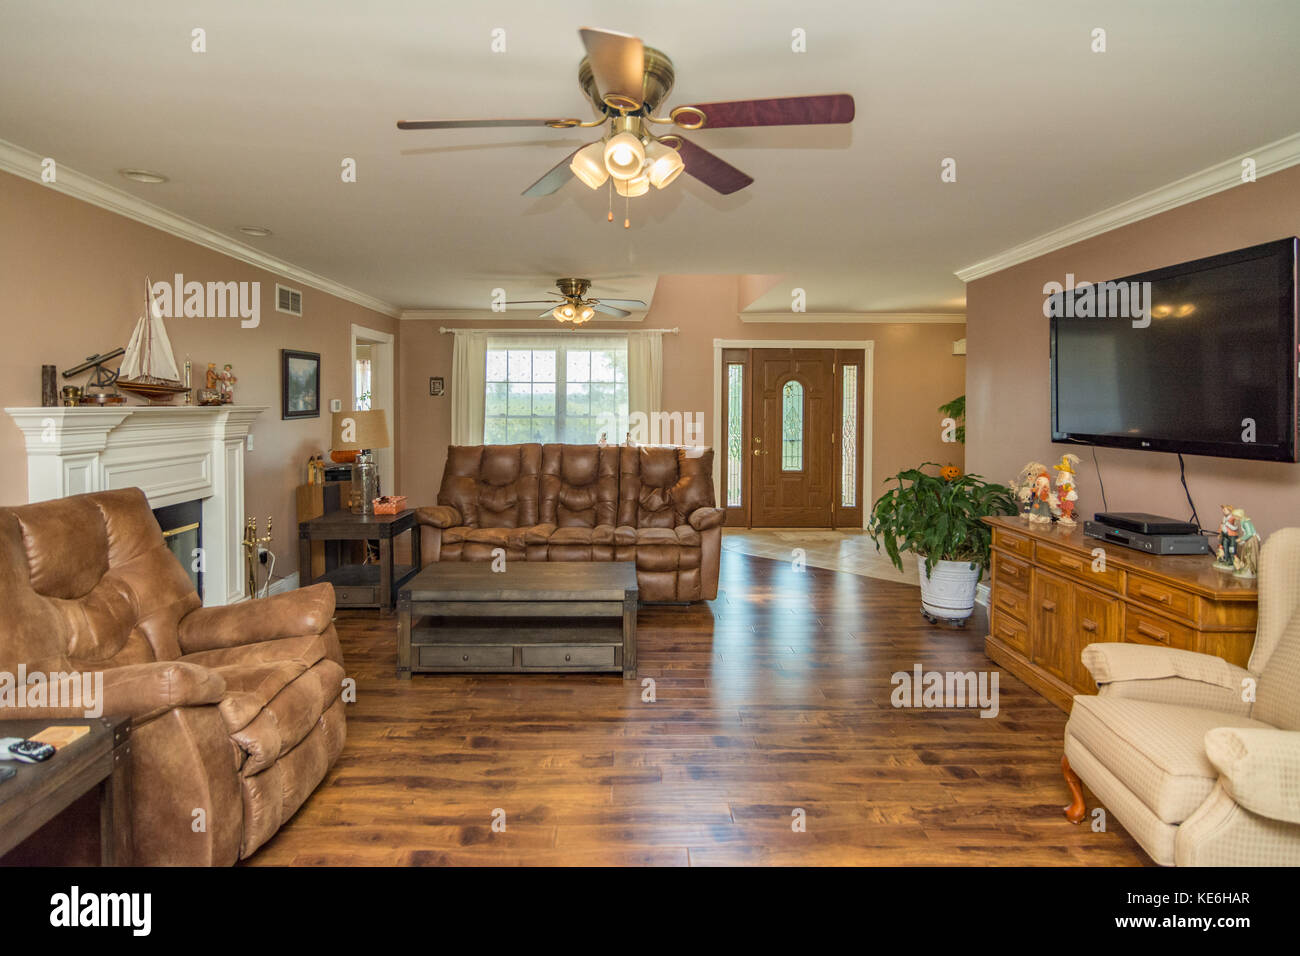 Living Room Interior Of Middle Class American Home In Kentucky Usa Stock Photo Alamy